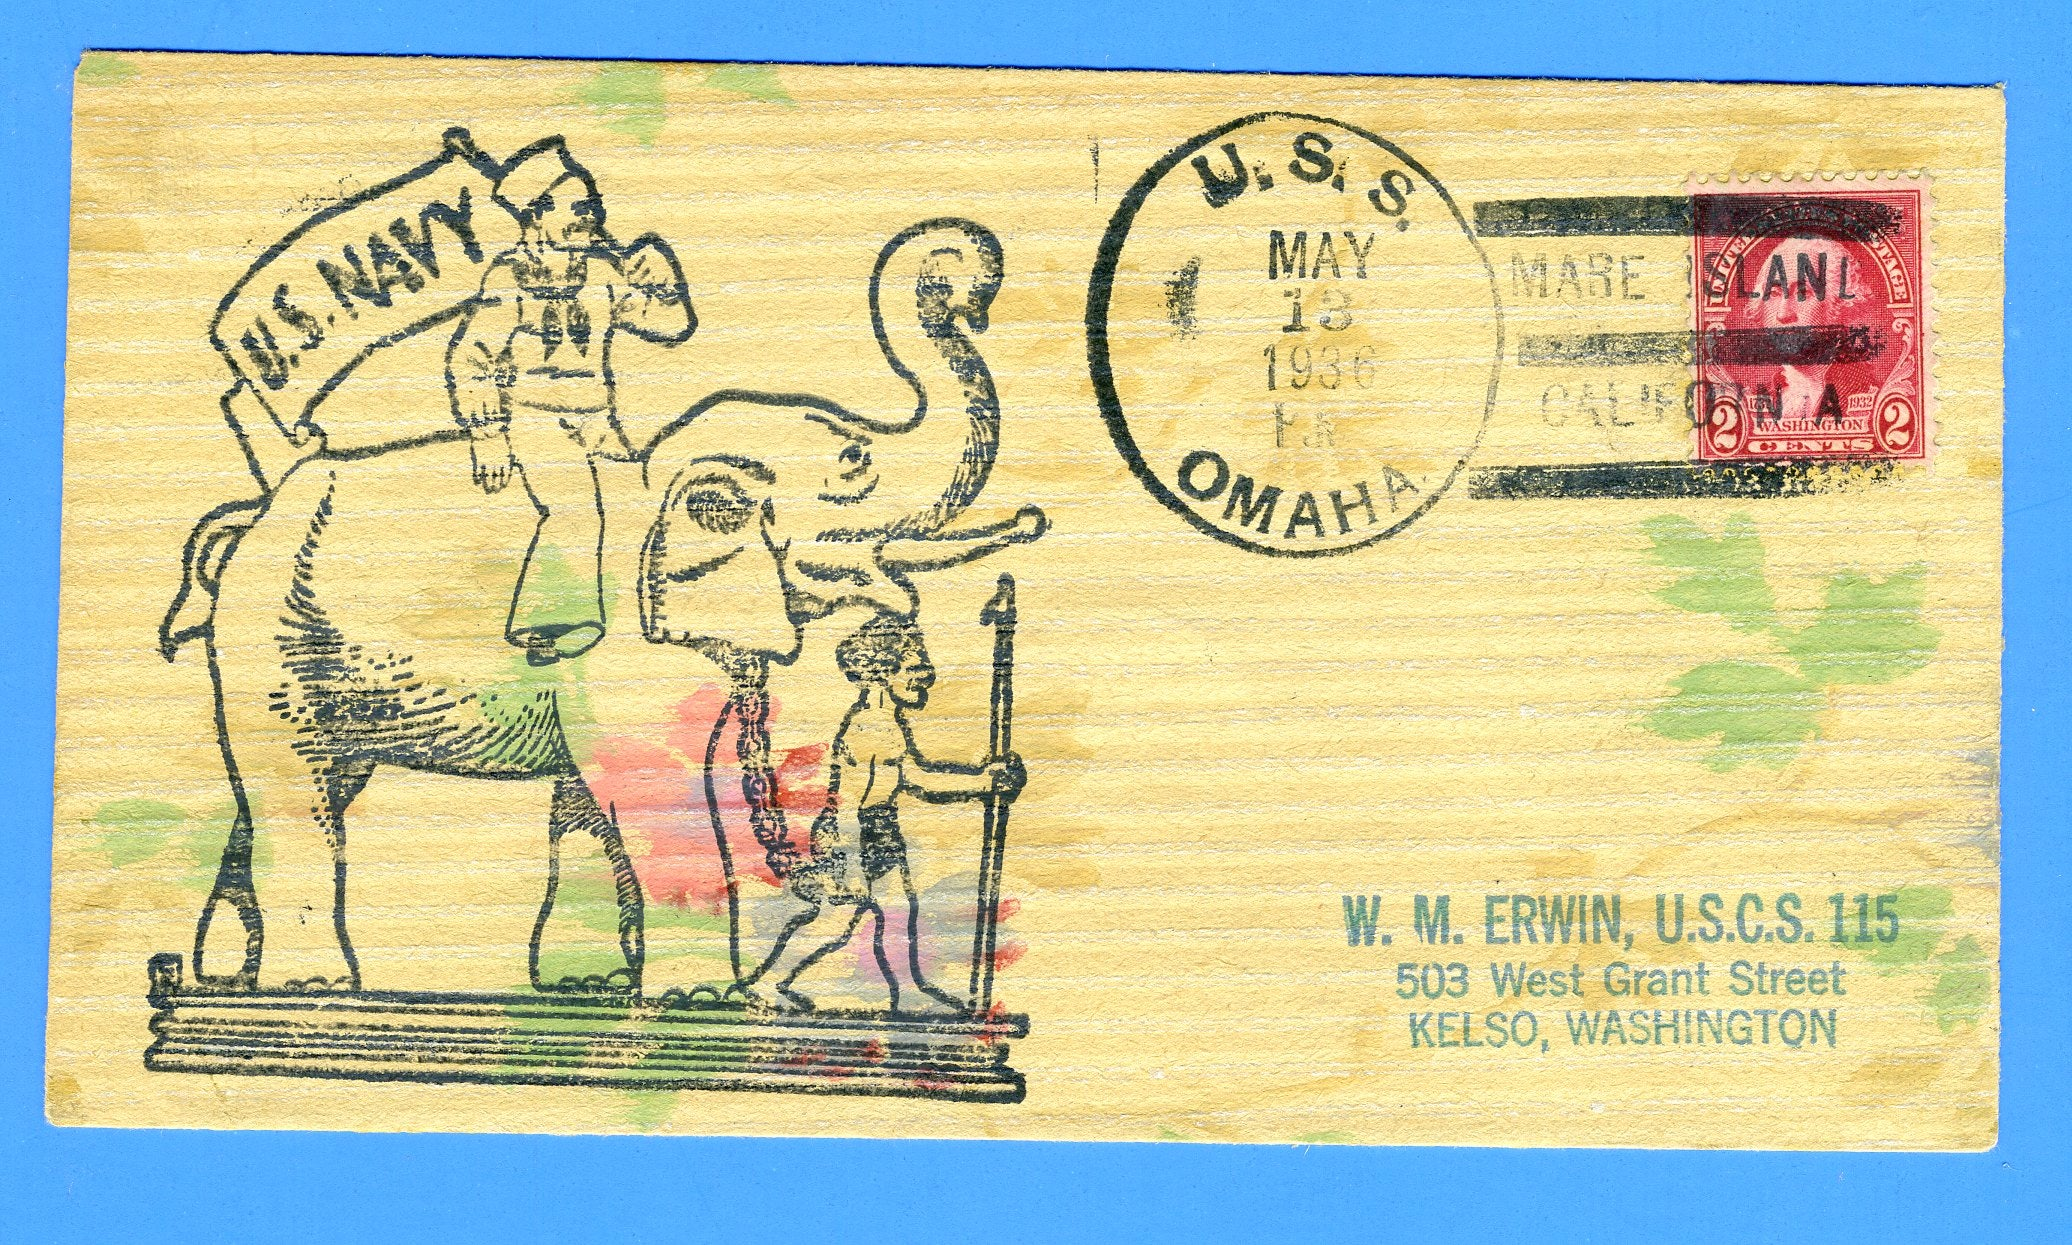 USS Omaha CL-4 Mare Island, CA May 13, 1936 - Hand Made Envelope on Textured Paper